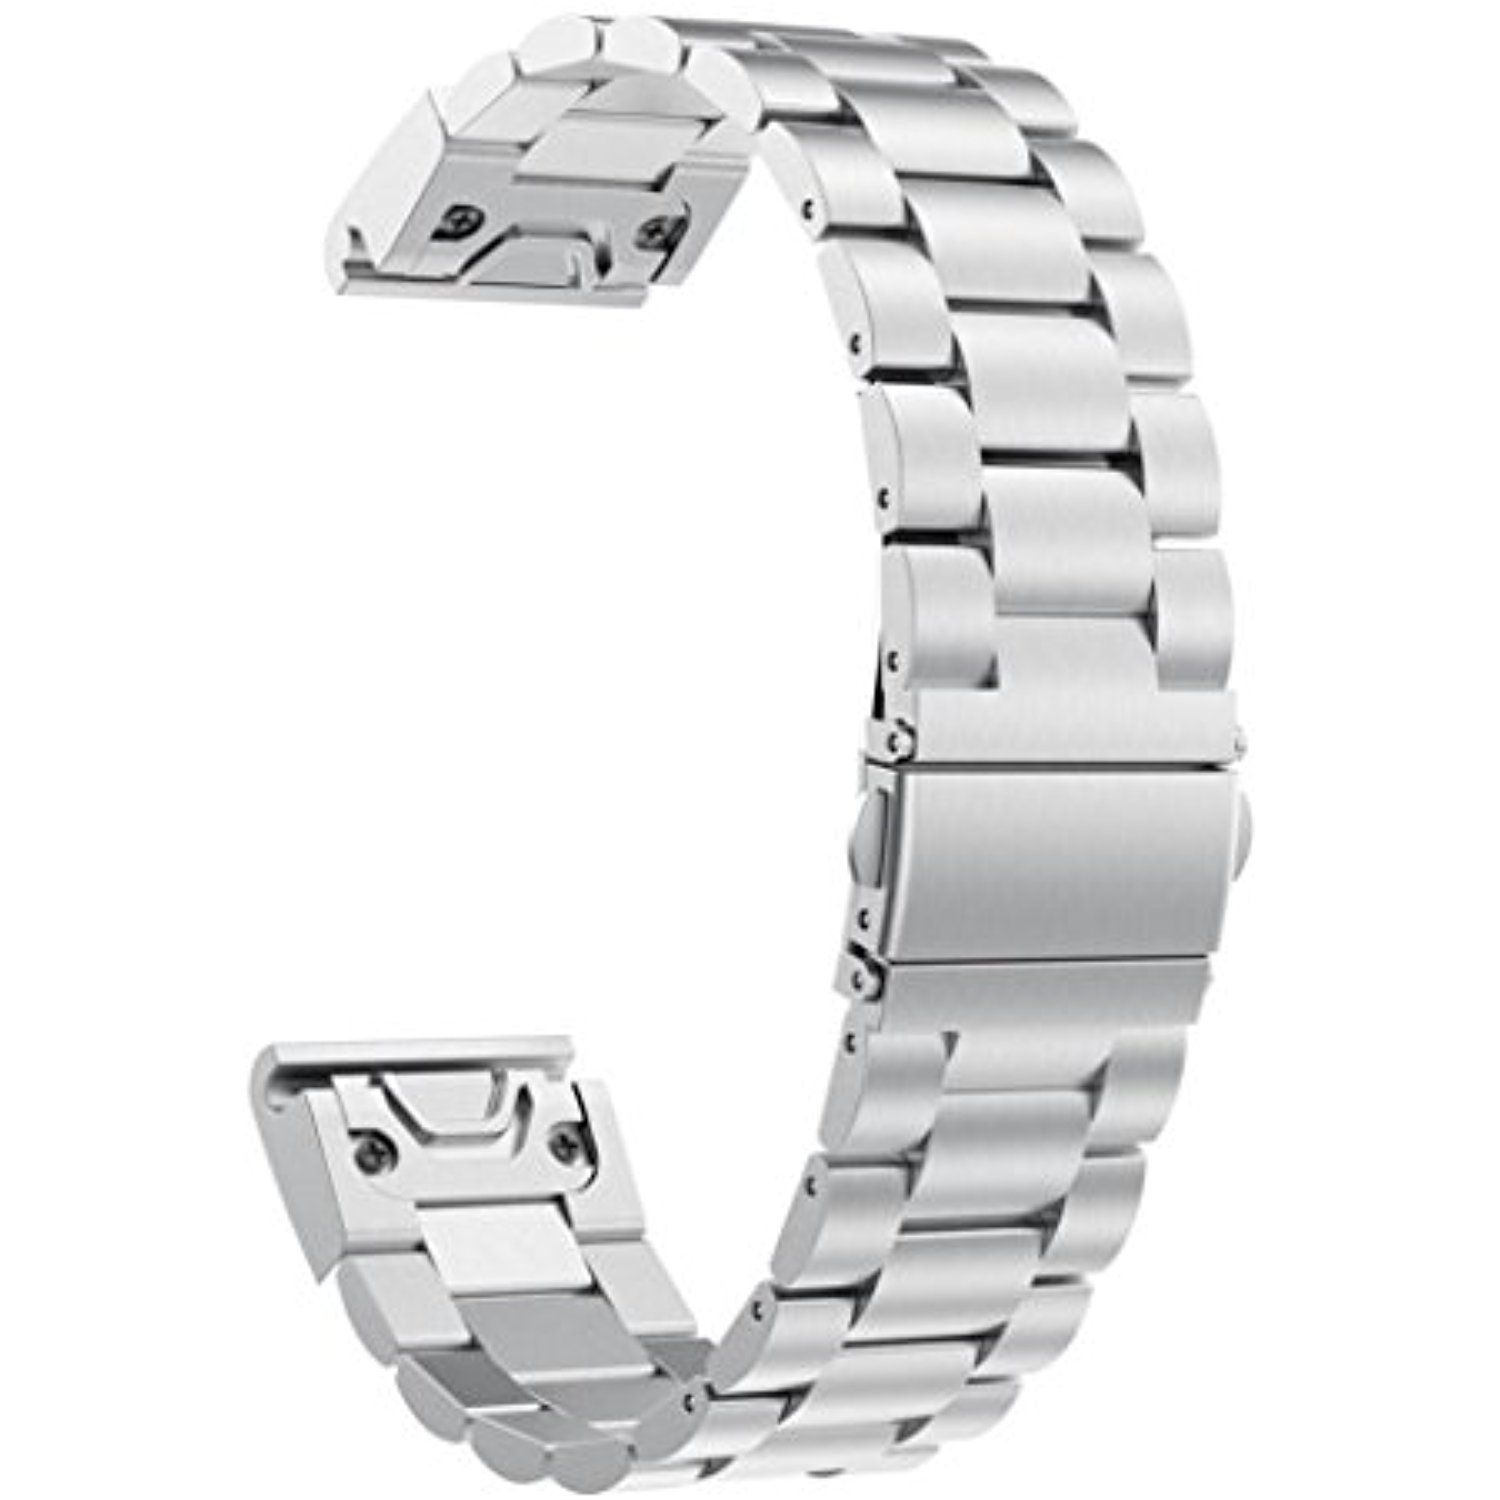 Garmin Forerunner 935 Quick Fit Wacth Band Zloskw Metal 22mm Black Replacement Stainless Steel Watch